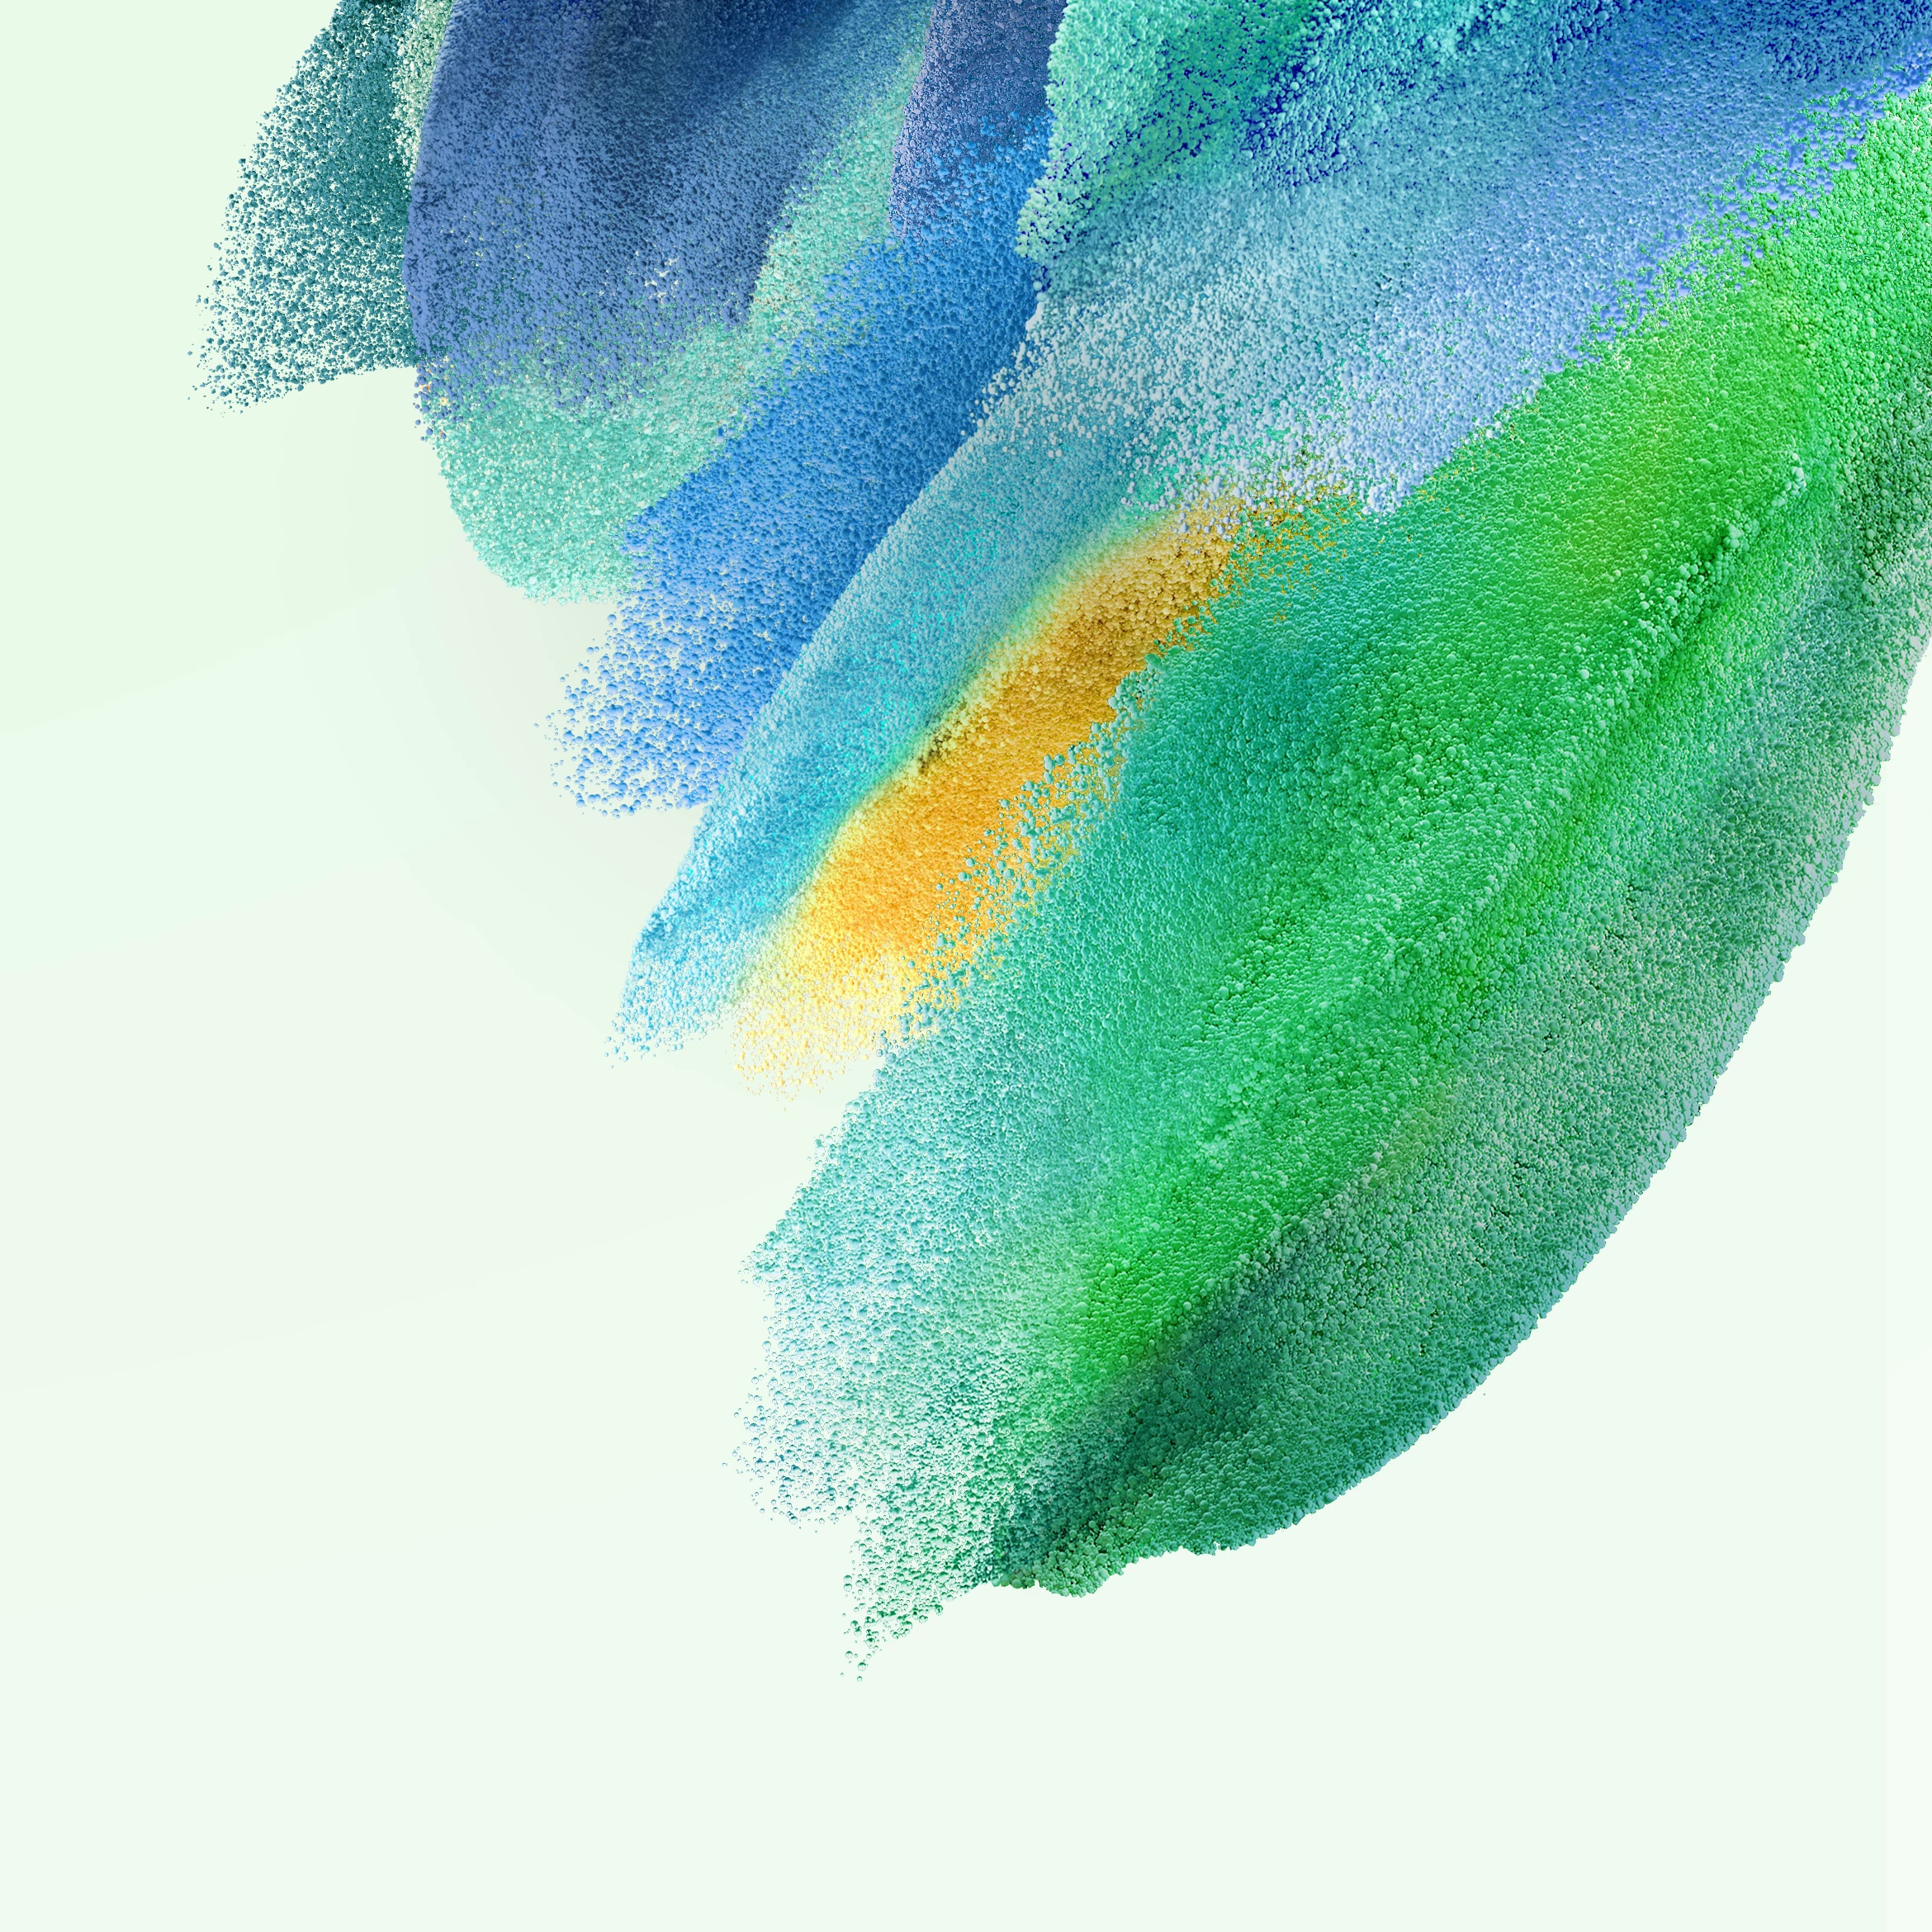 Samsung Galaxy S21 FE Wallpapers (Samsung Galaxy S21 FE Stock Wallpapers)